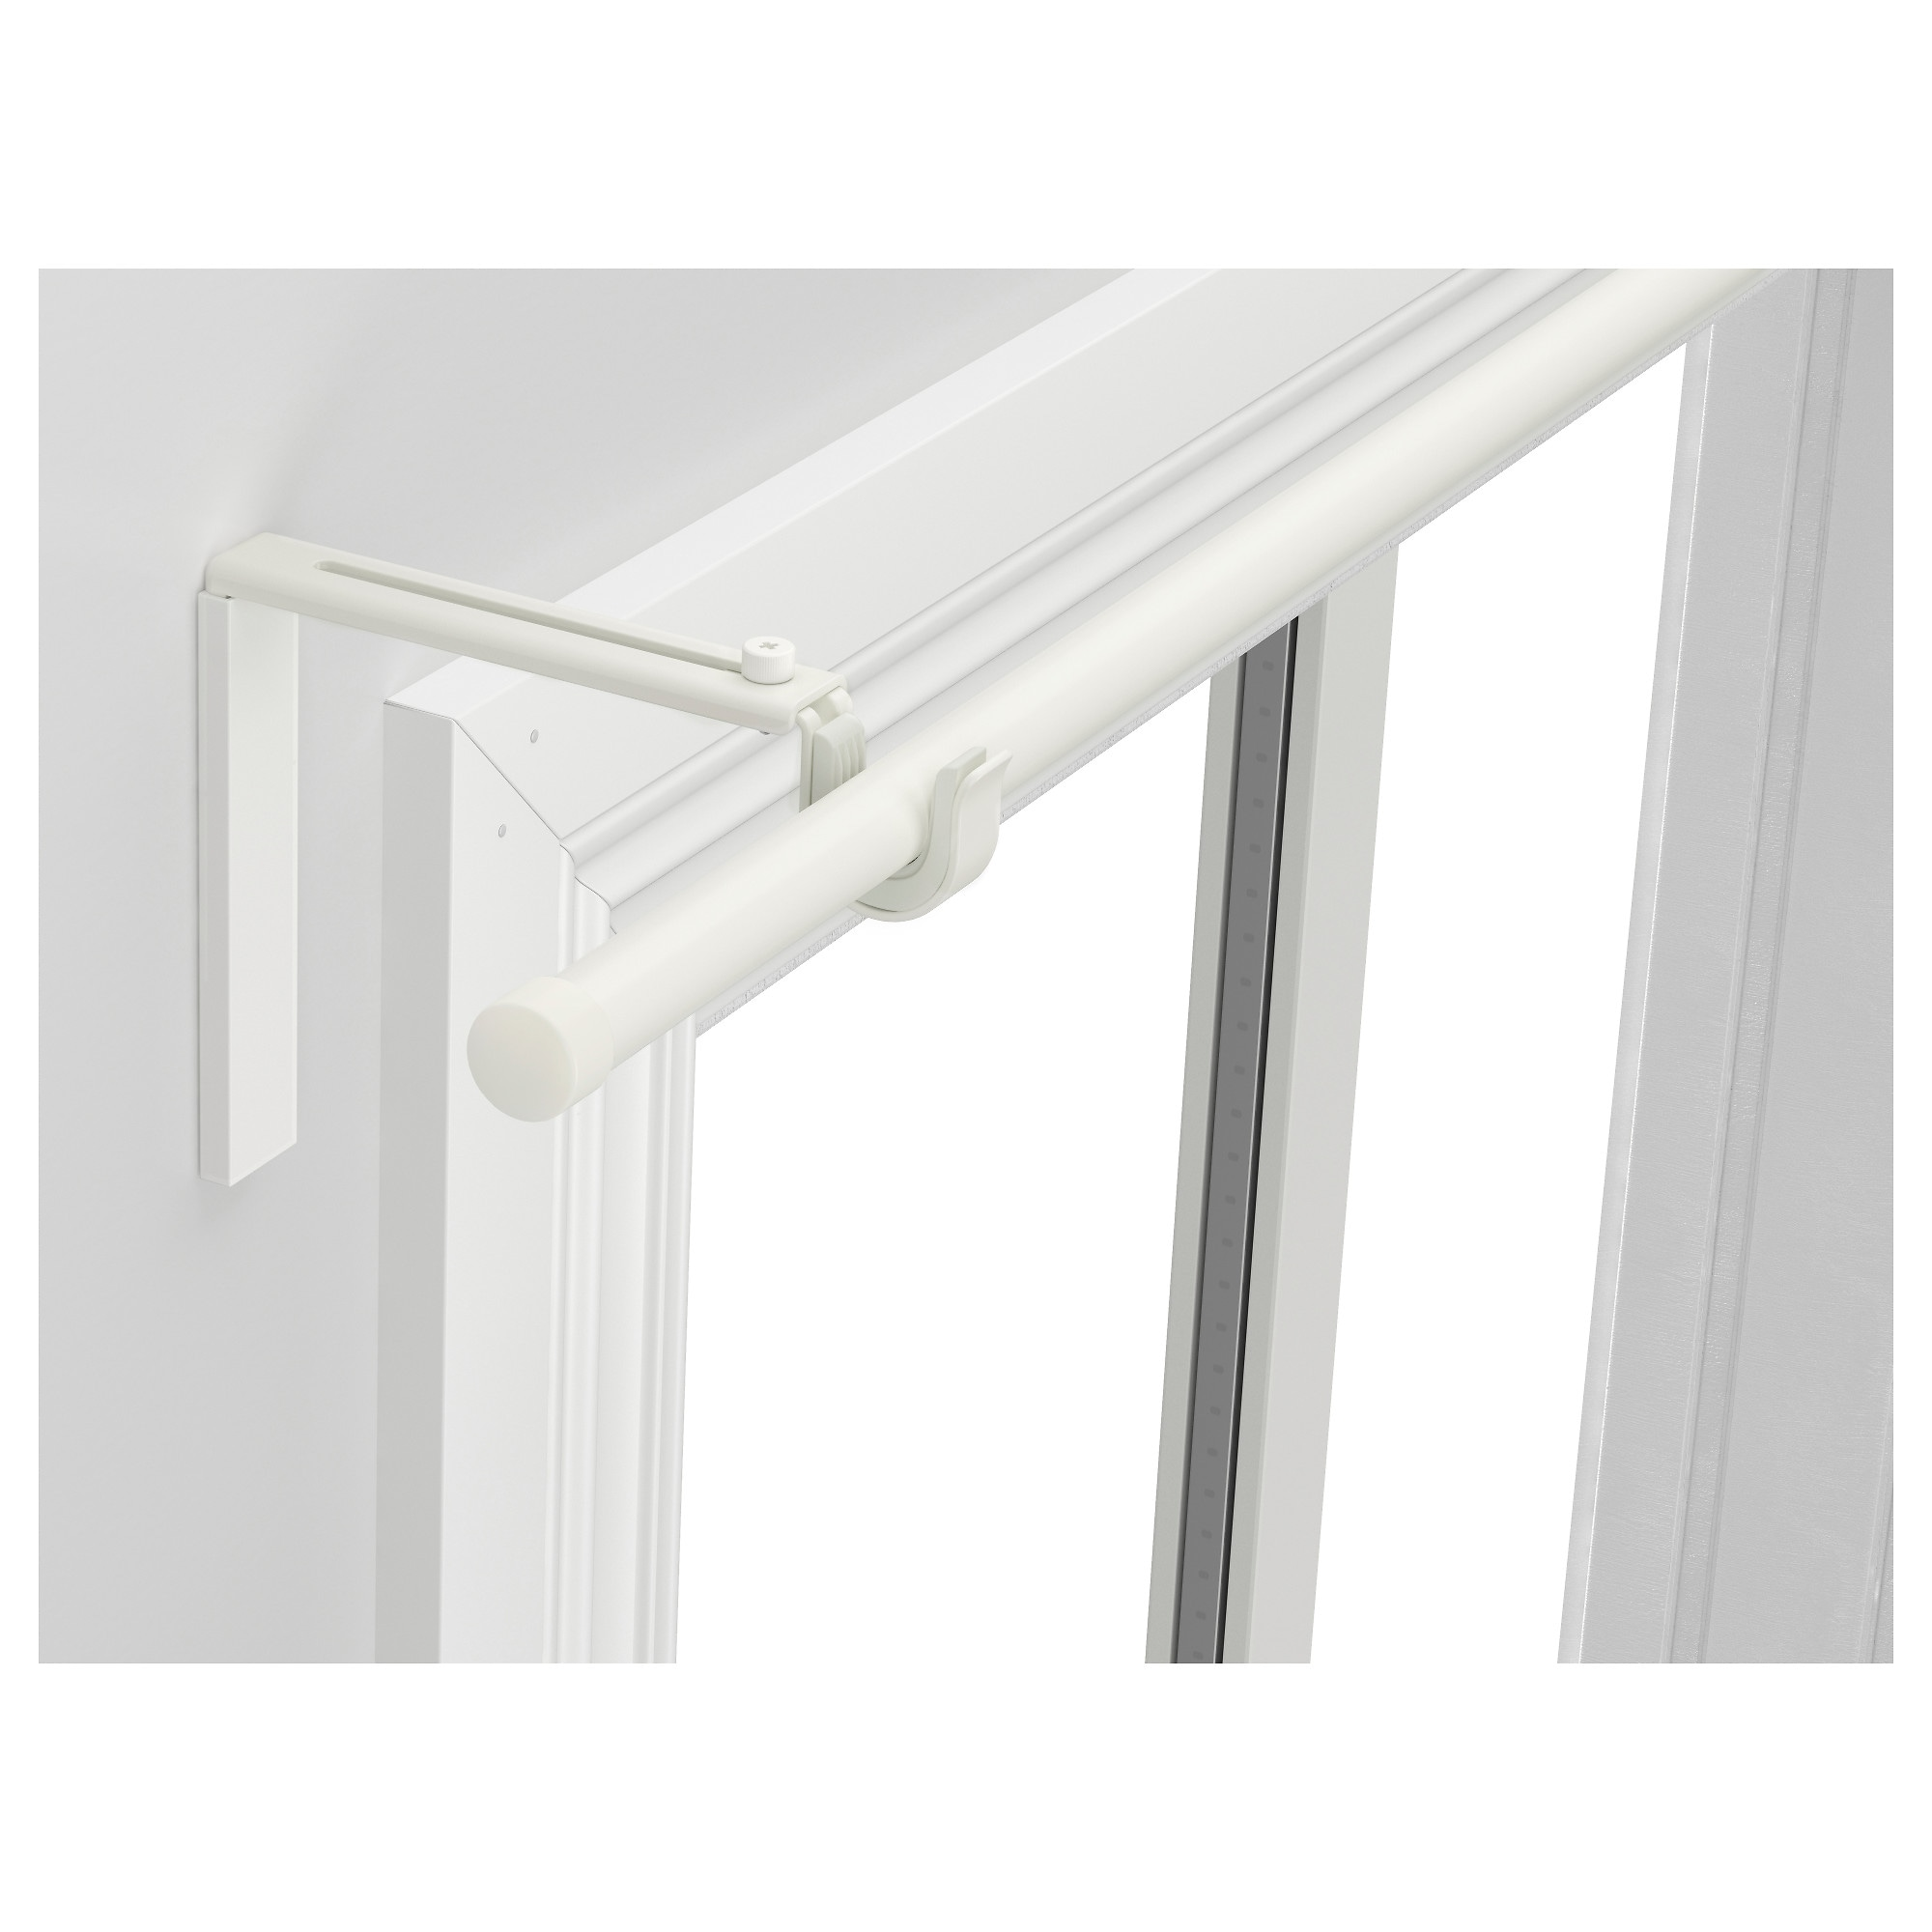 Curtain rods - Curtain Rods